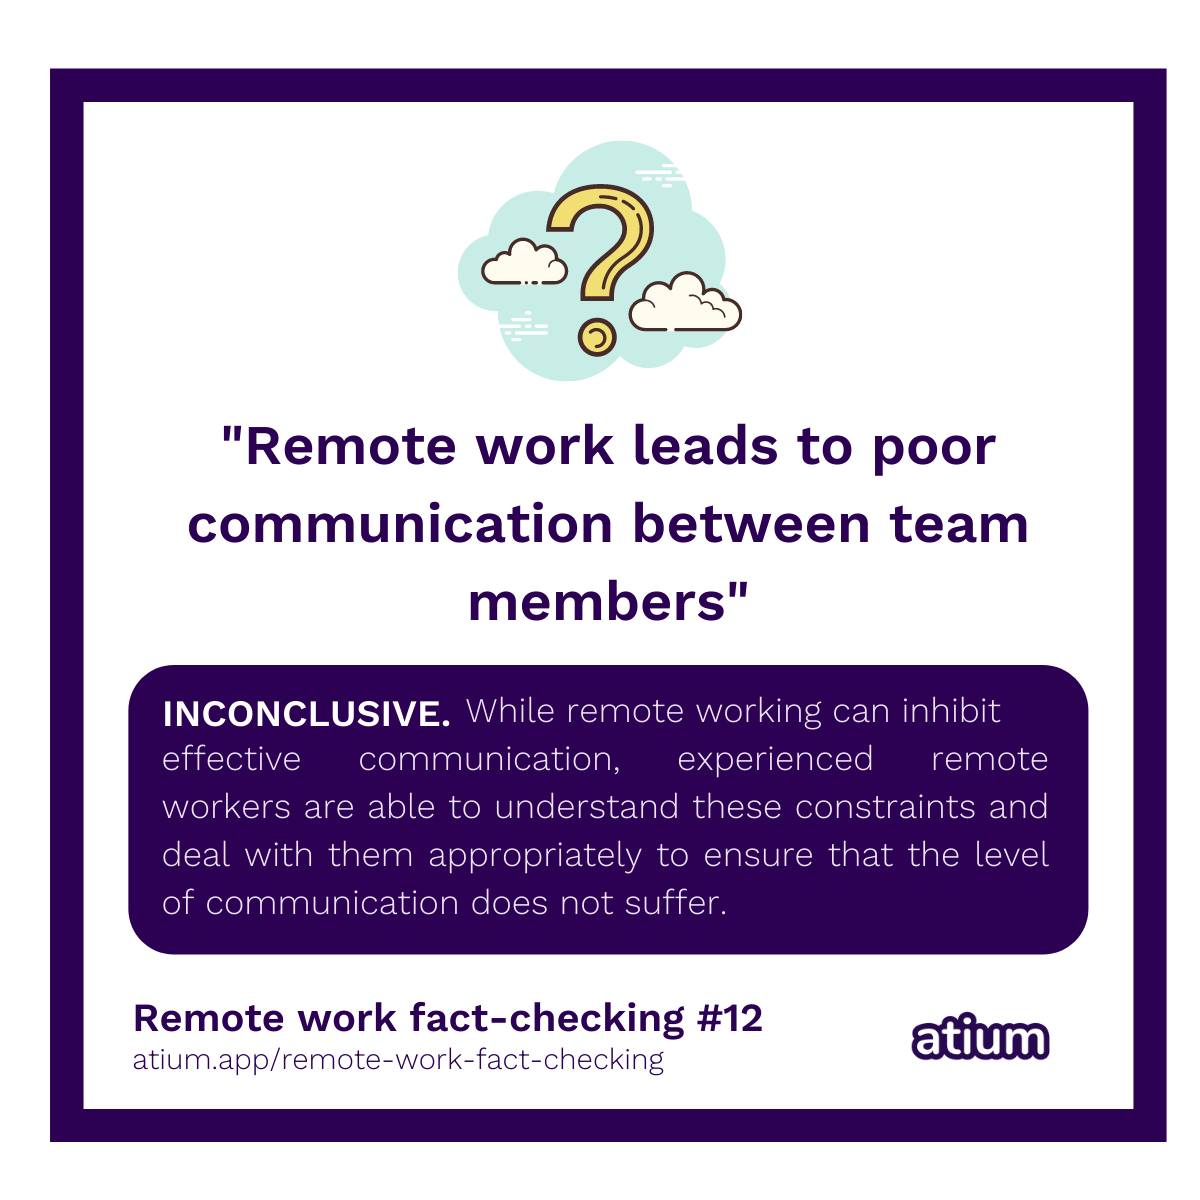 Remote work leads to poor communication between team members